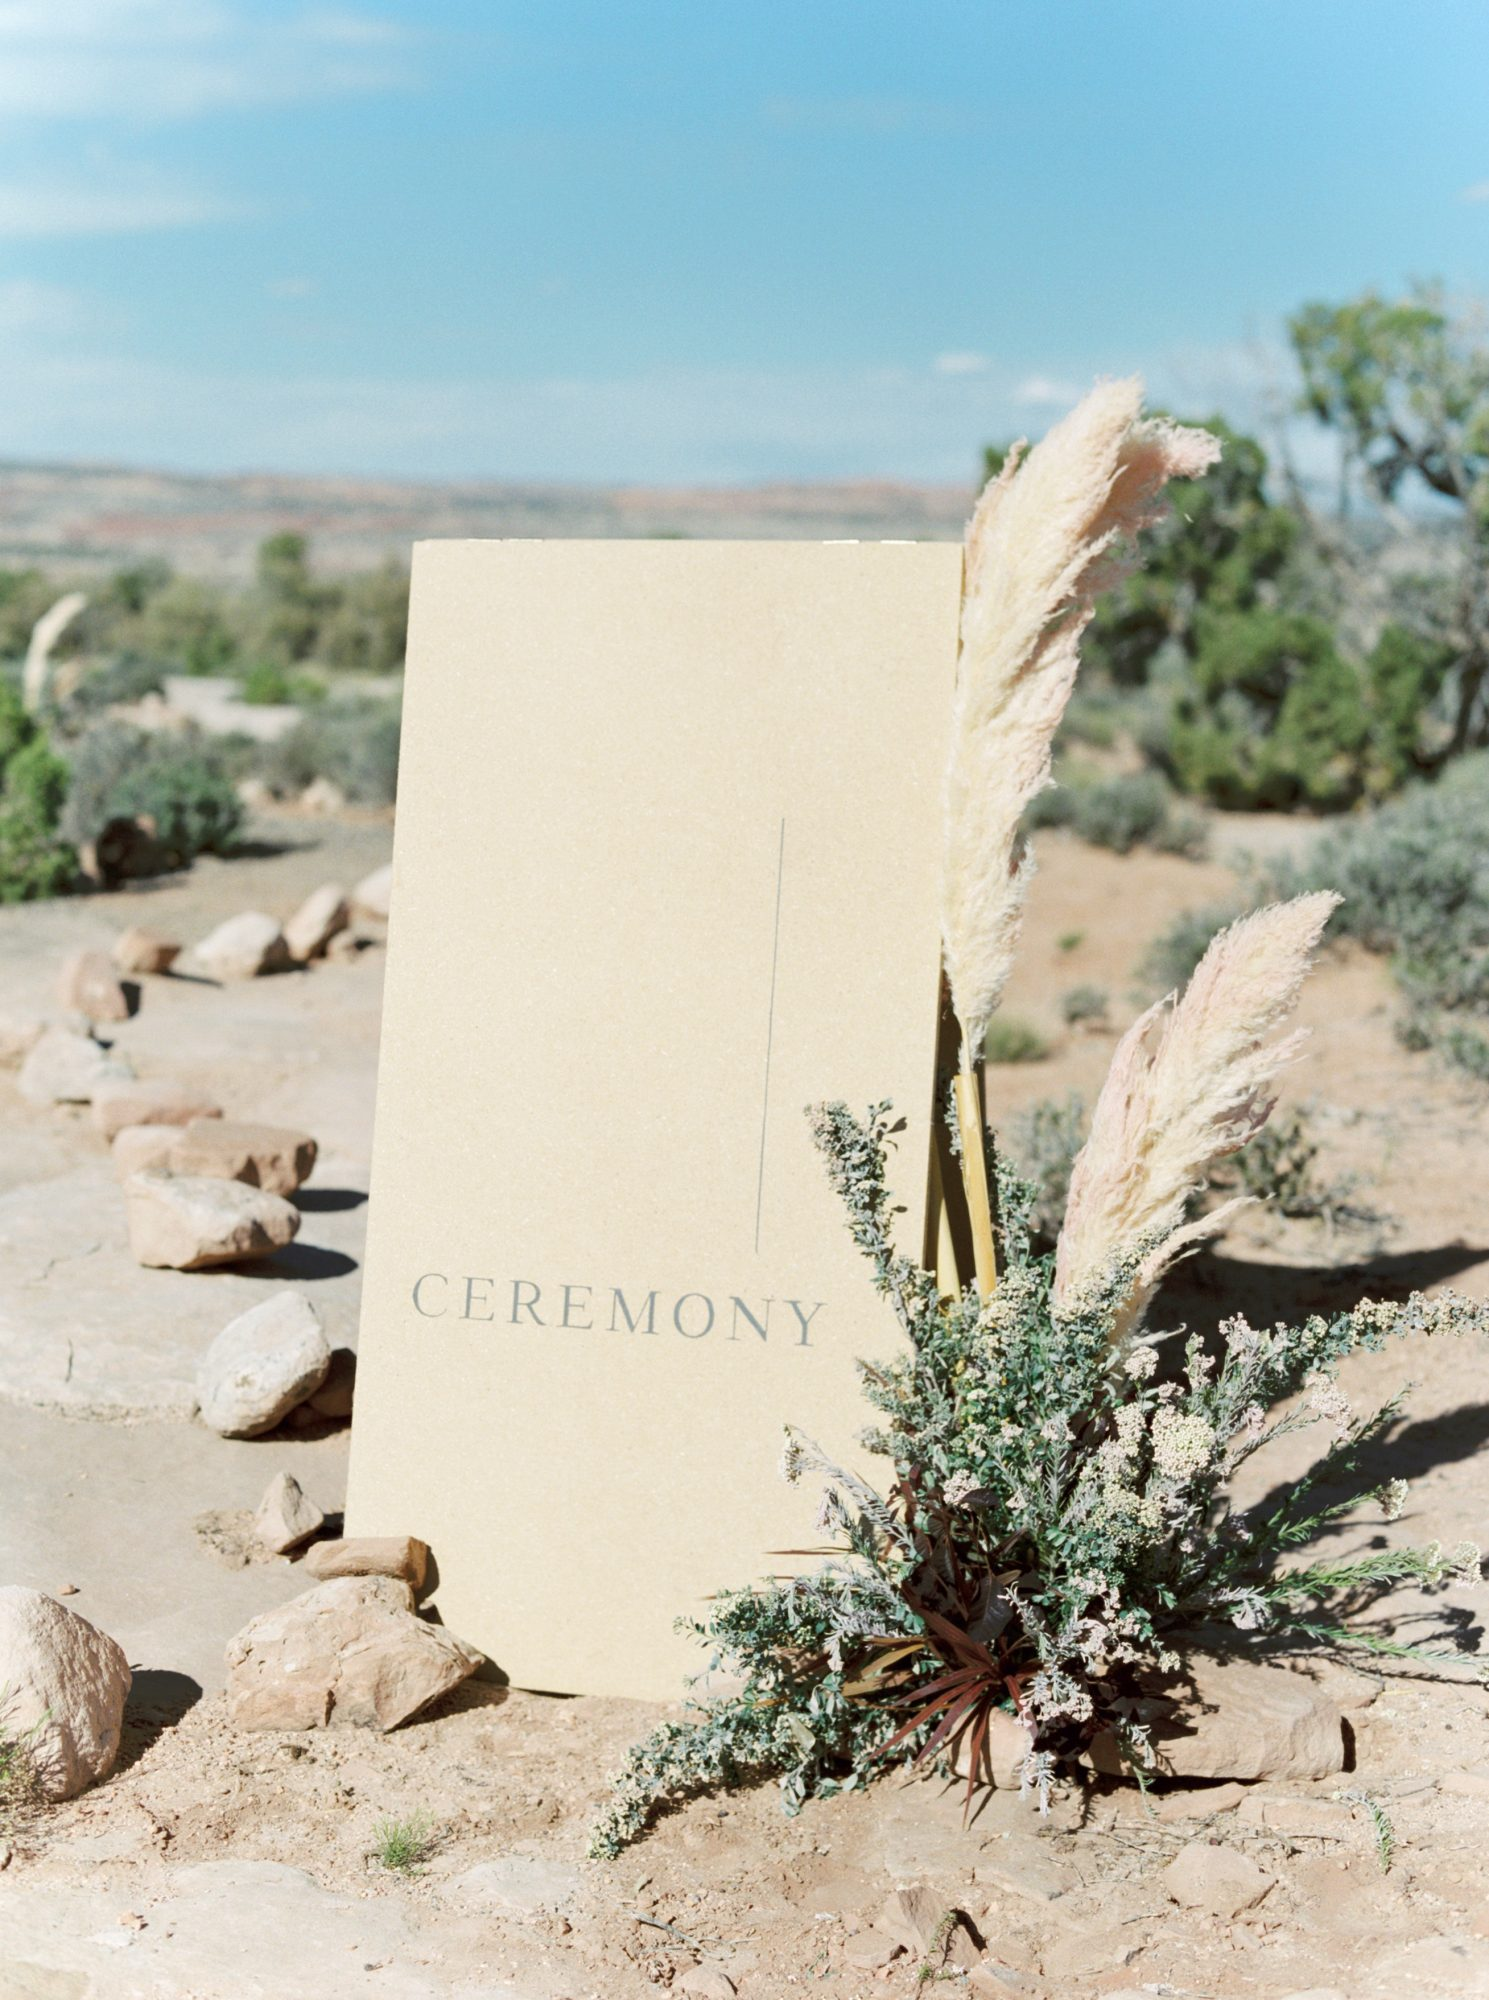 jeanette david wedding desert ceremony site sign